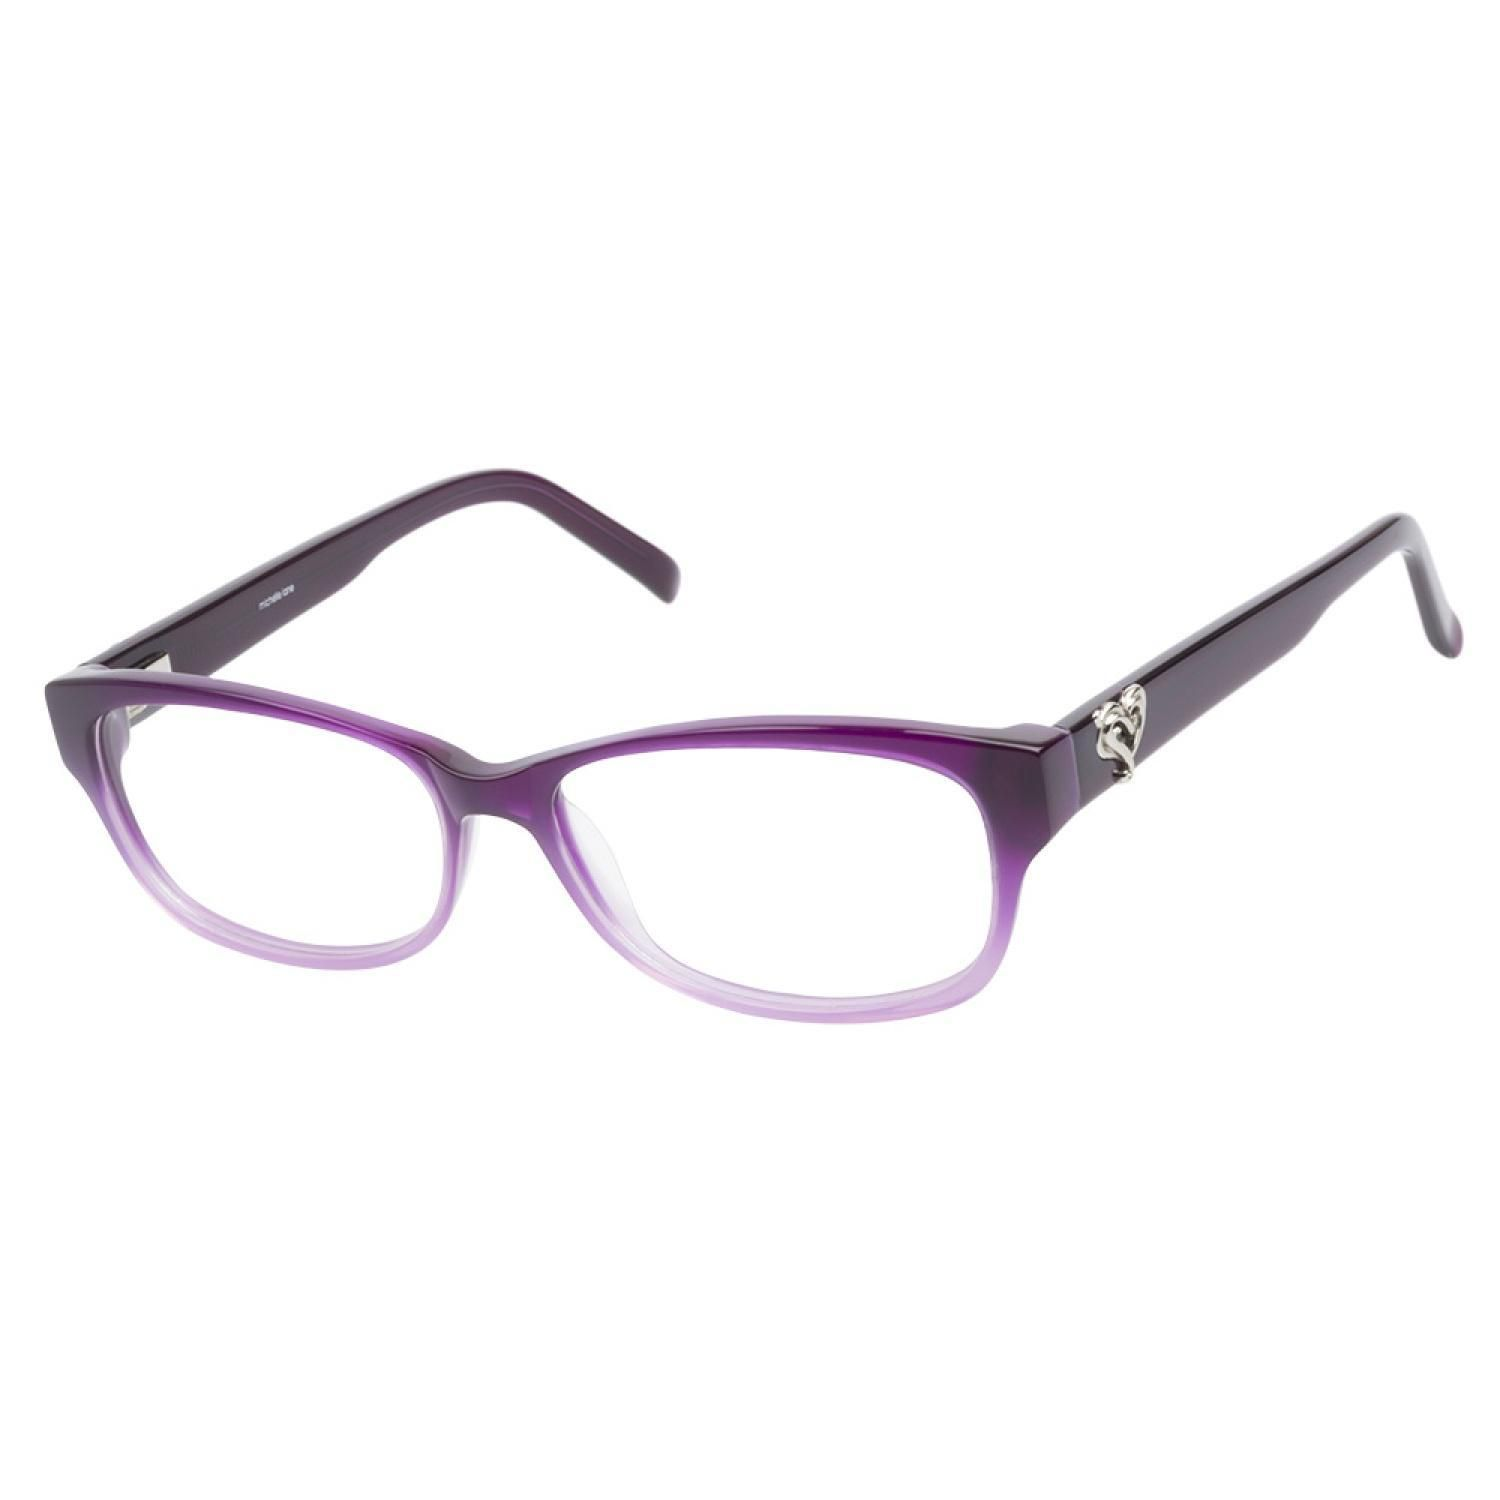 8b346b3326 Michelle+Lane+ML810+Purple+Ombre+eyeglasses+are+flirty+and+fun.+This+vivid+ frame+has+a+faux+cateye+shape+with+a+rich+purple+ombre+finish.